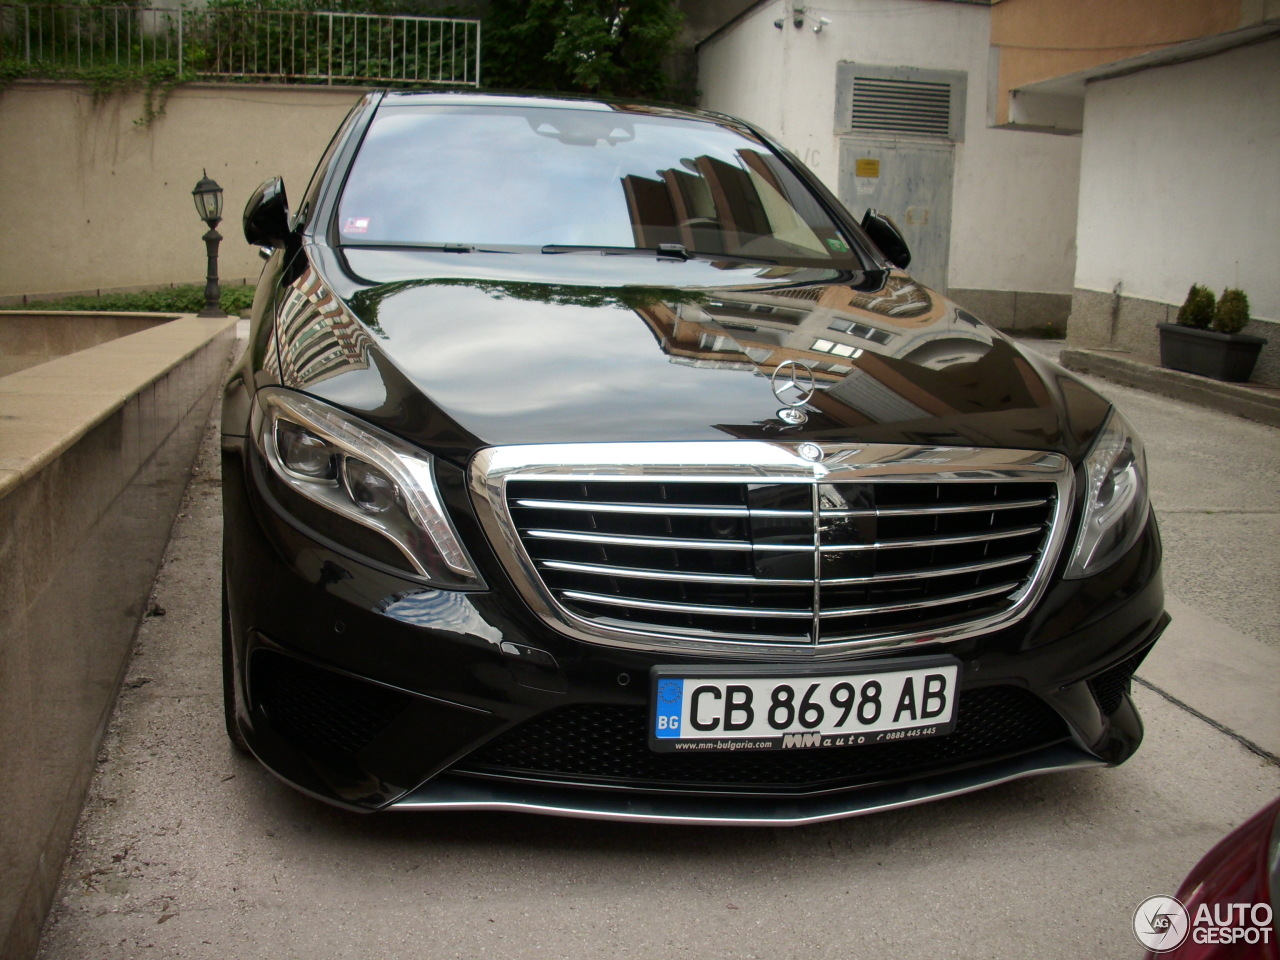 Mercedes benz s 63 amg w222 13 may 2015 autogespot for All types of mercedes benz cars